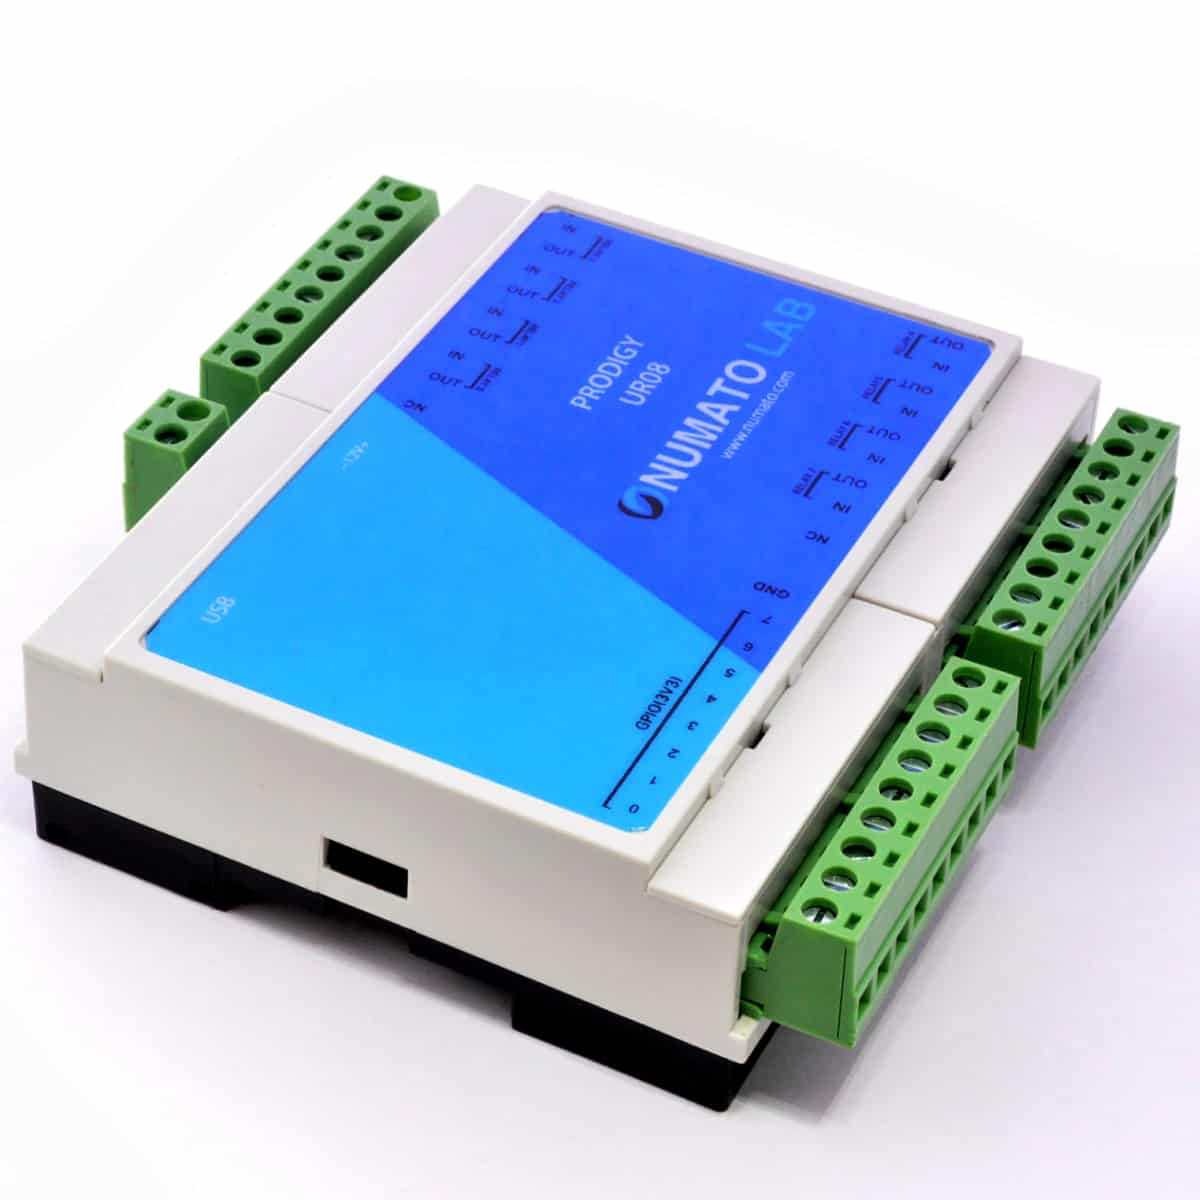 Prodigy Usb Modbus Relay Modules With Analog And Digital Inputs Din Electric Cost Numato Labs 8 16 Channel Rail Compatible Module Io Offers Great Flexibility At Lower